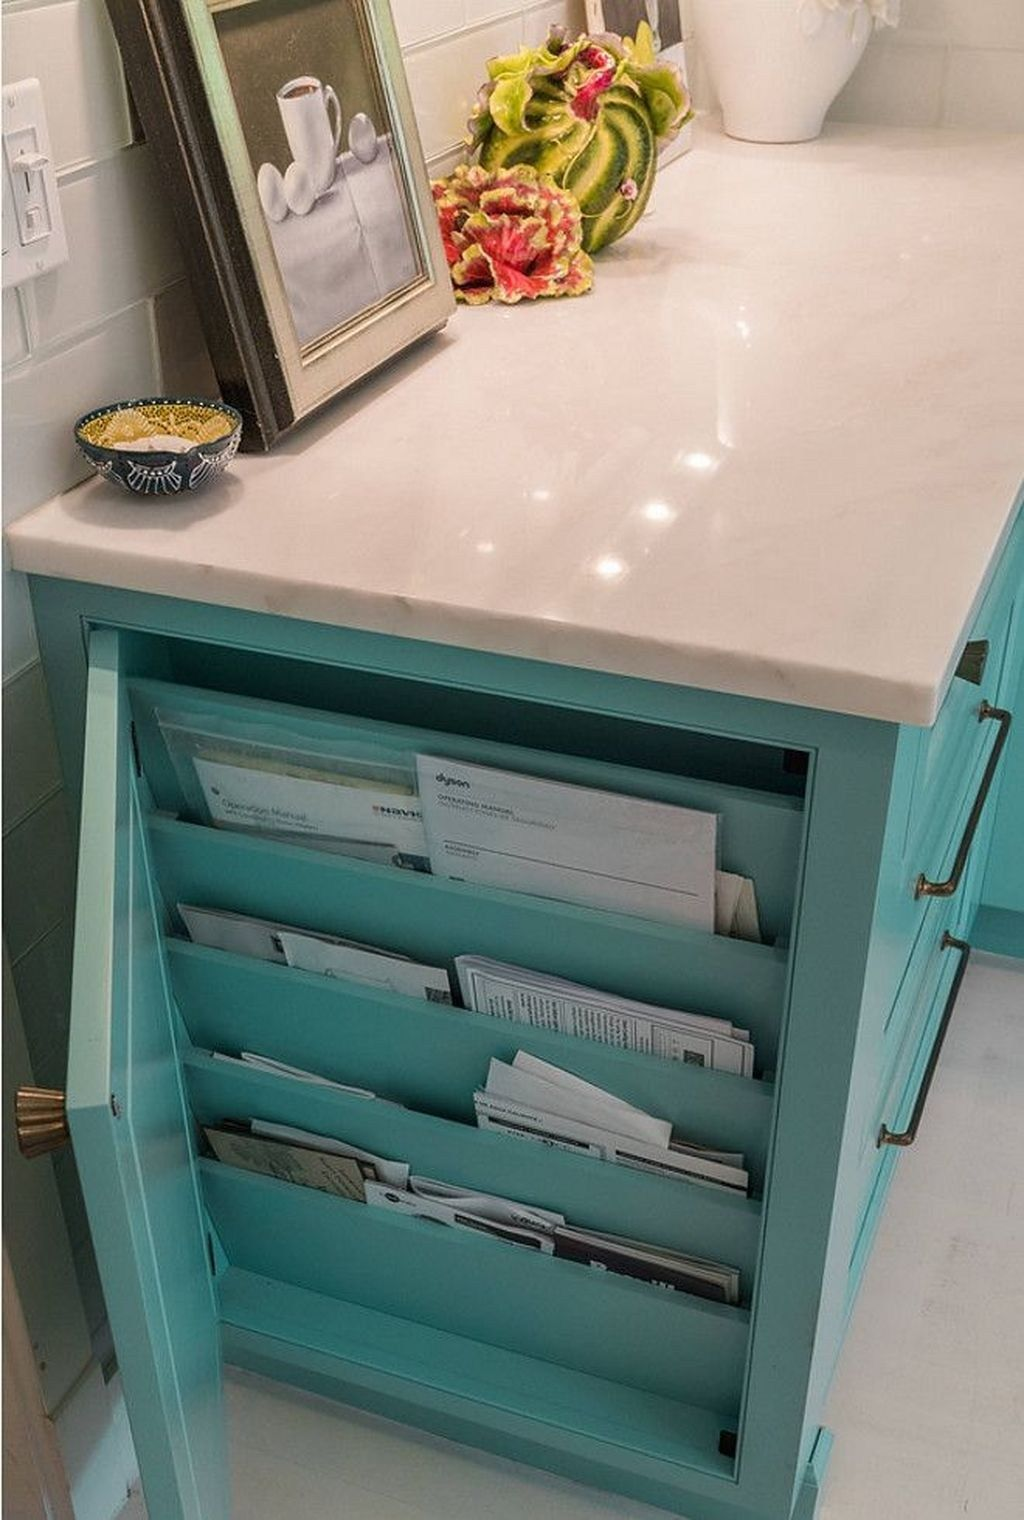 30+ Best Diy Ideas For Kitchen Storage images